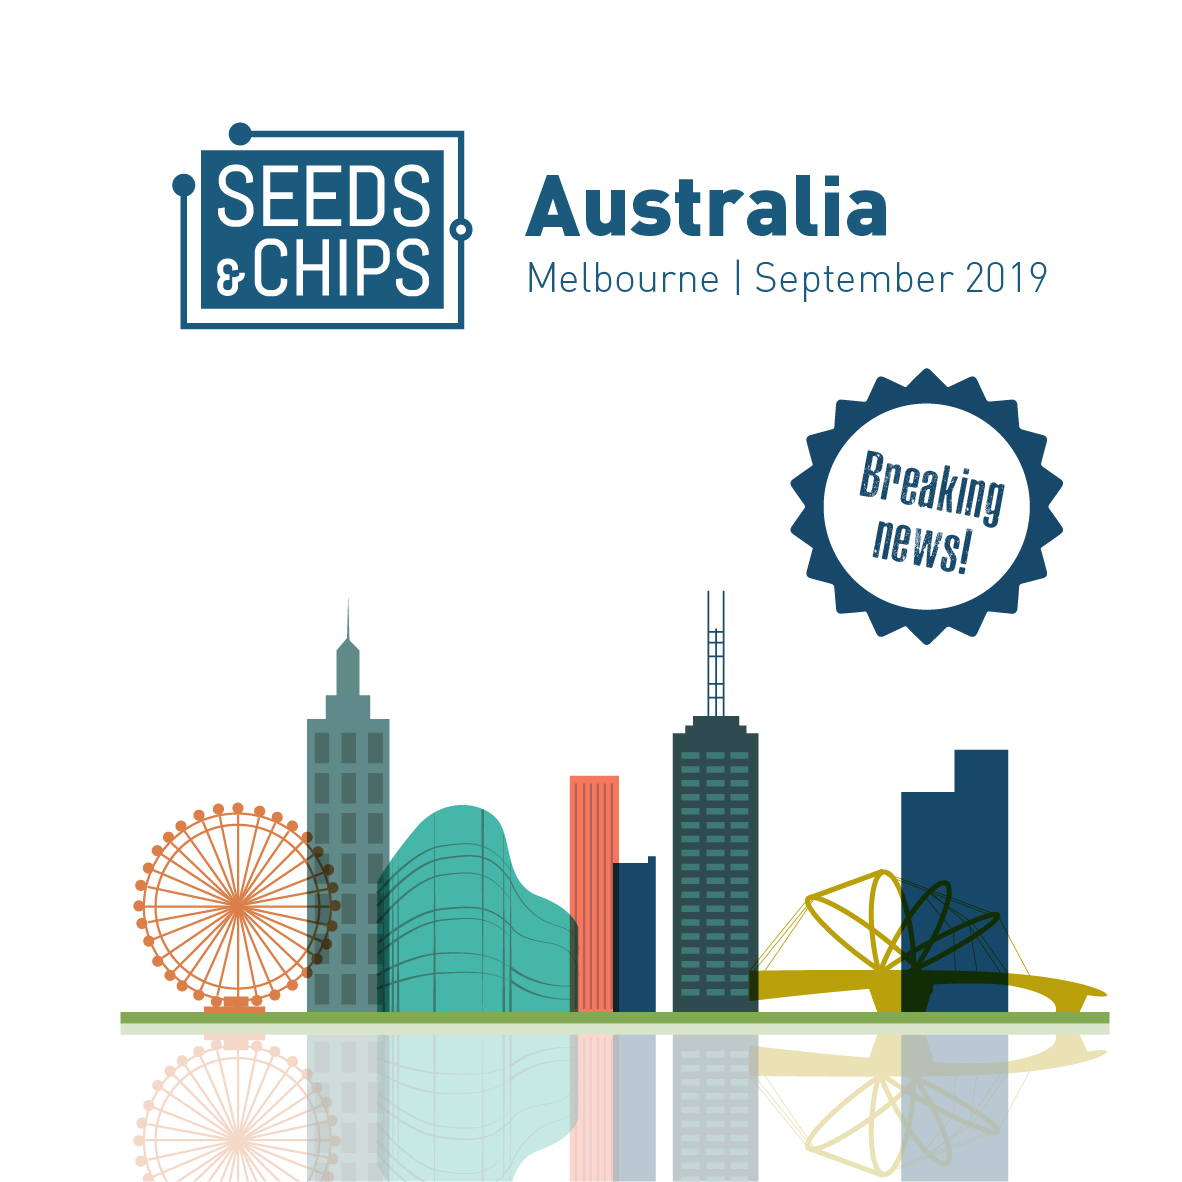 Seeds&Chips Launching in Melbourne